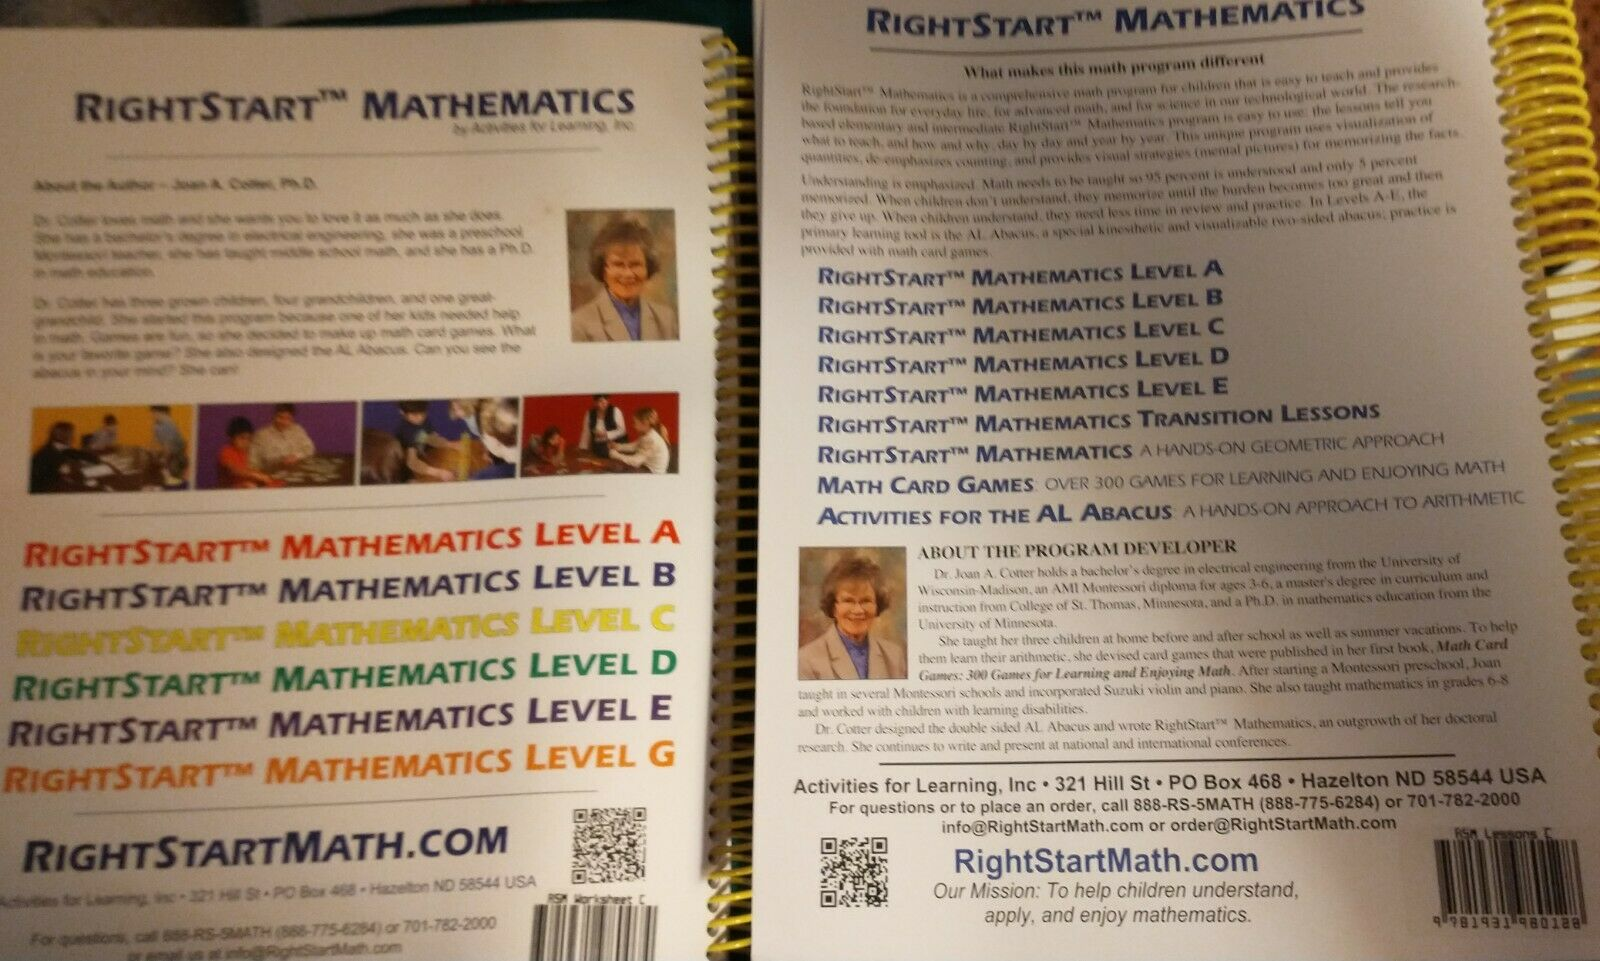 Rightstart Mathematics Level C Lessons and Worksheets 2 Books 2014 |